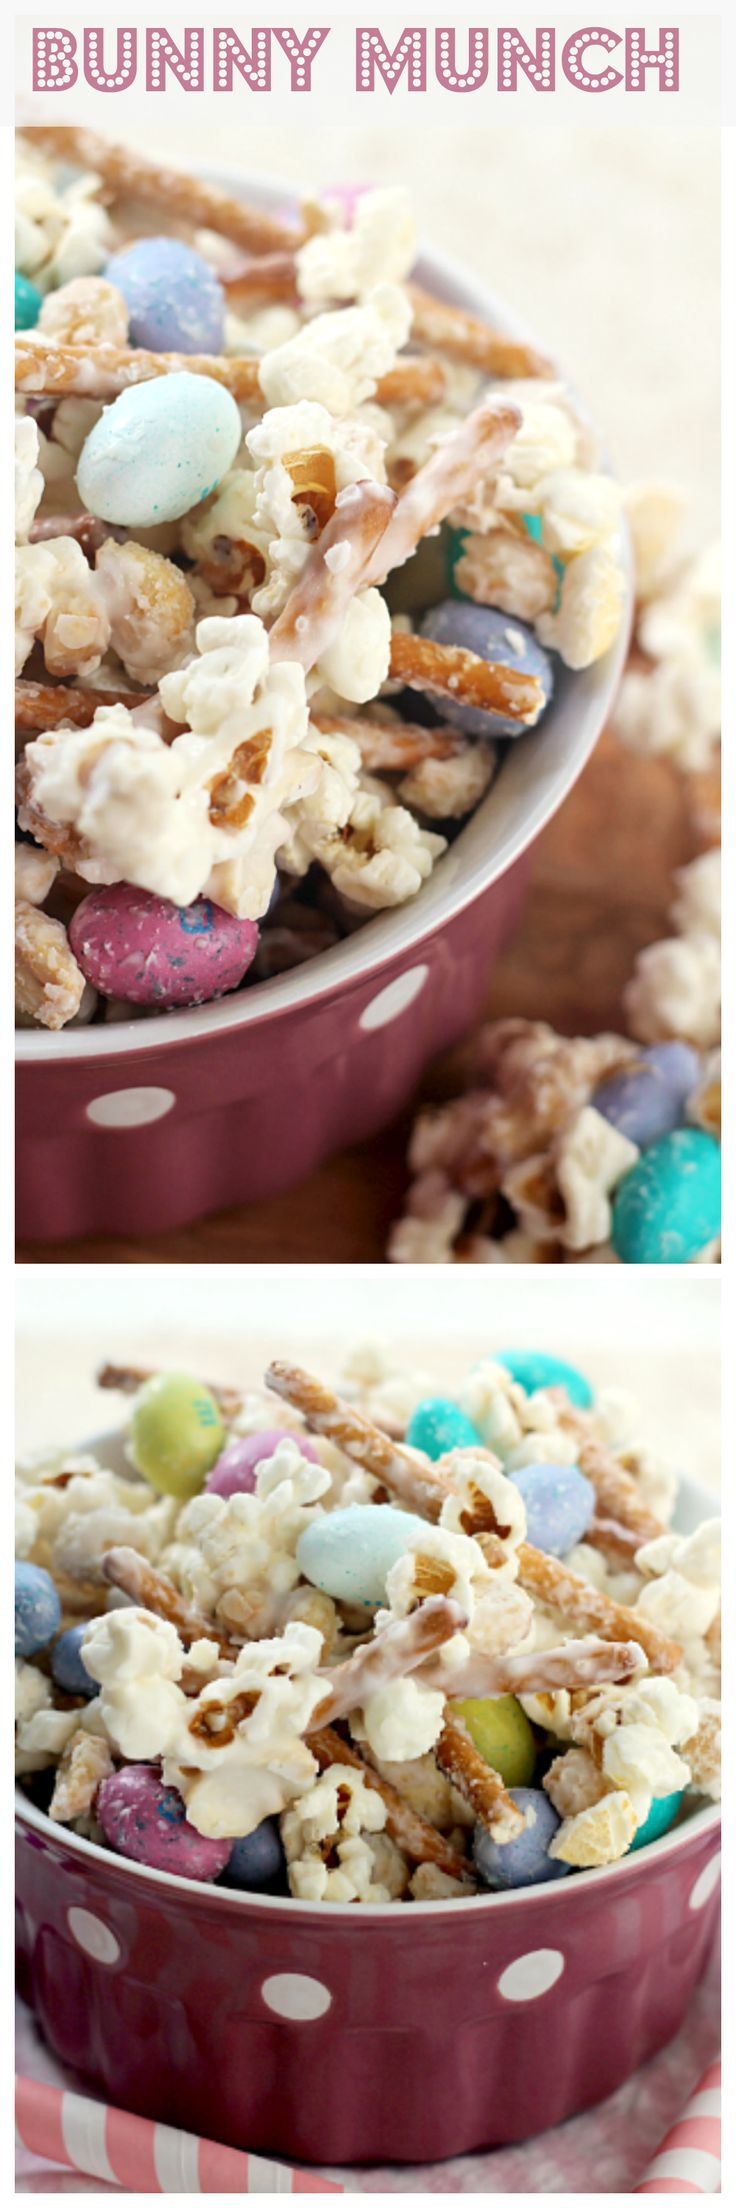 Bunny Munch ~ Sweet & Salty Snack Mix Loaded with Popcorn, M&Ms, Pretzels and Peanut then coated in a Vanilla Candy Coating!